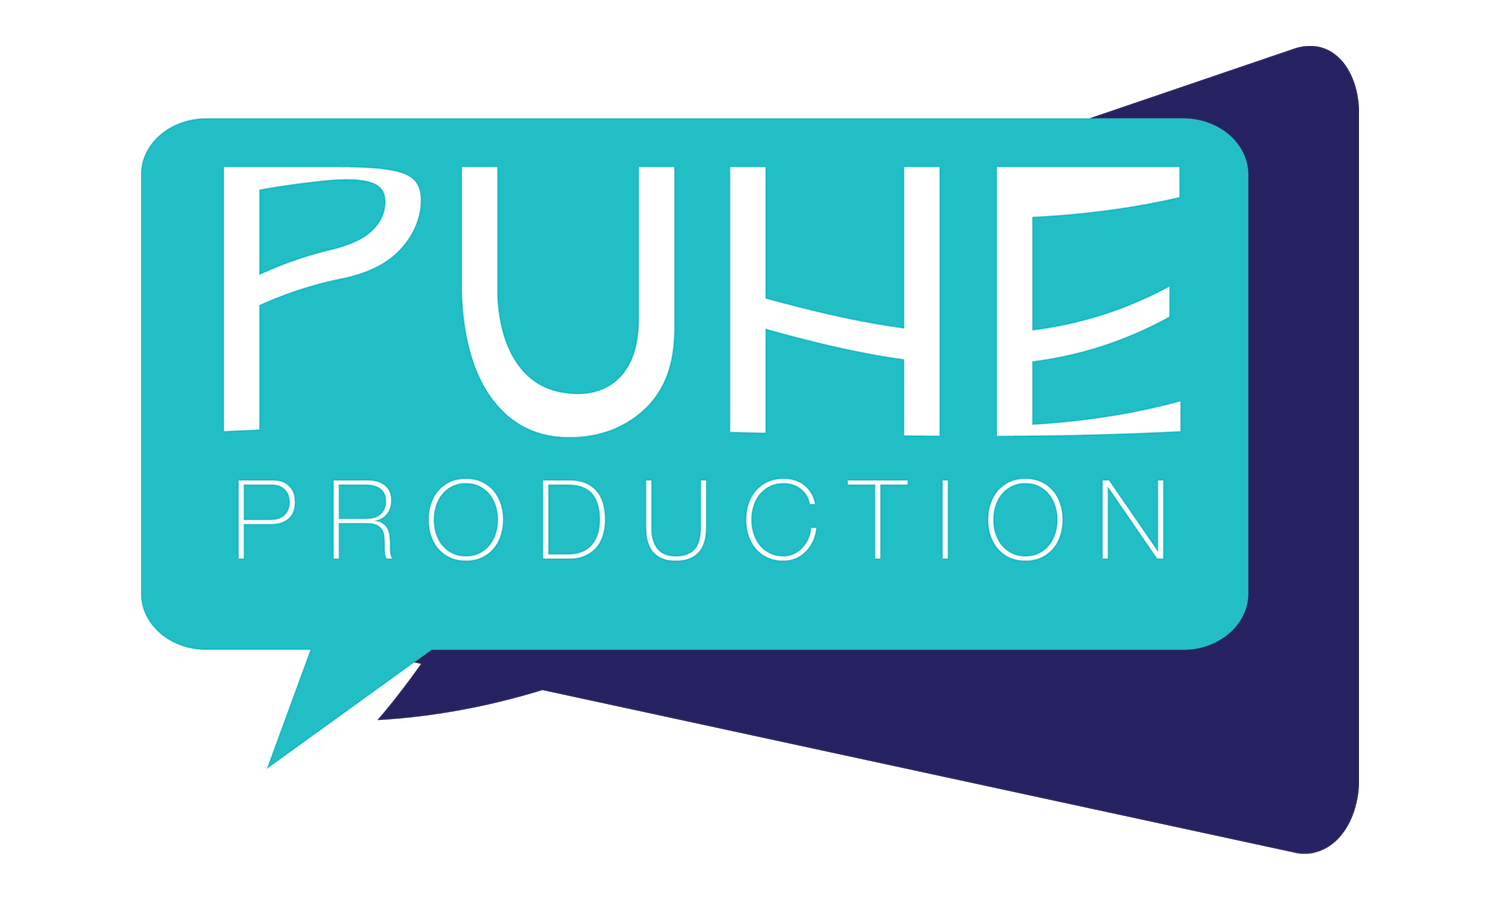 PuheProduction Oy